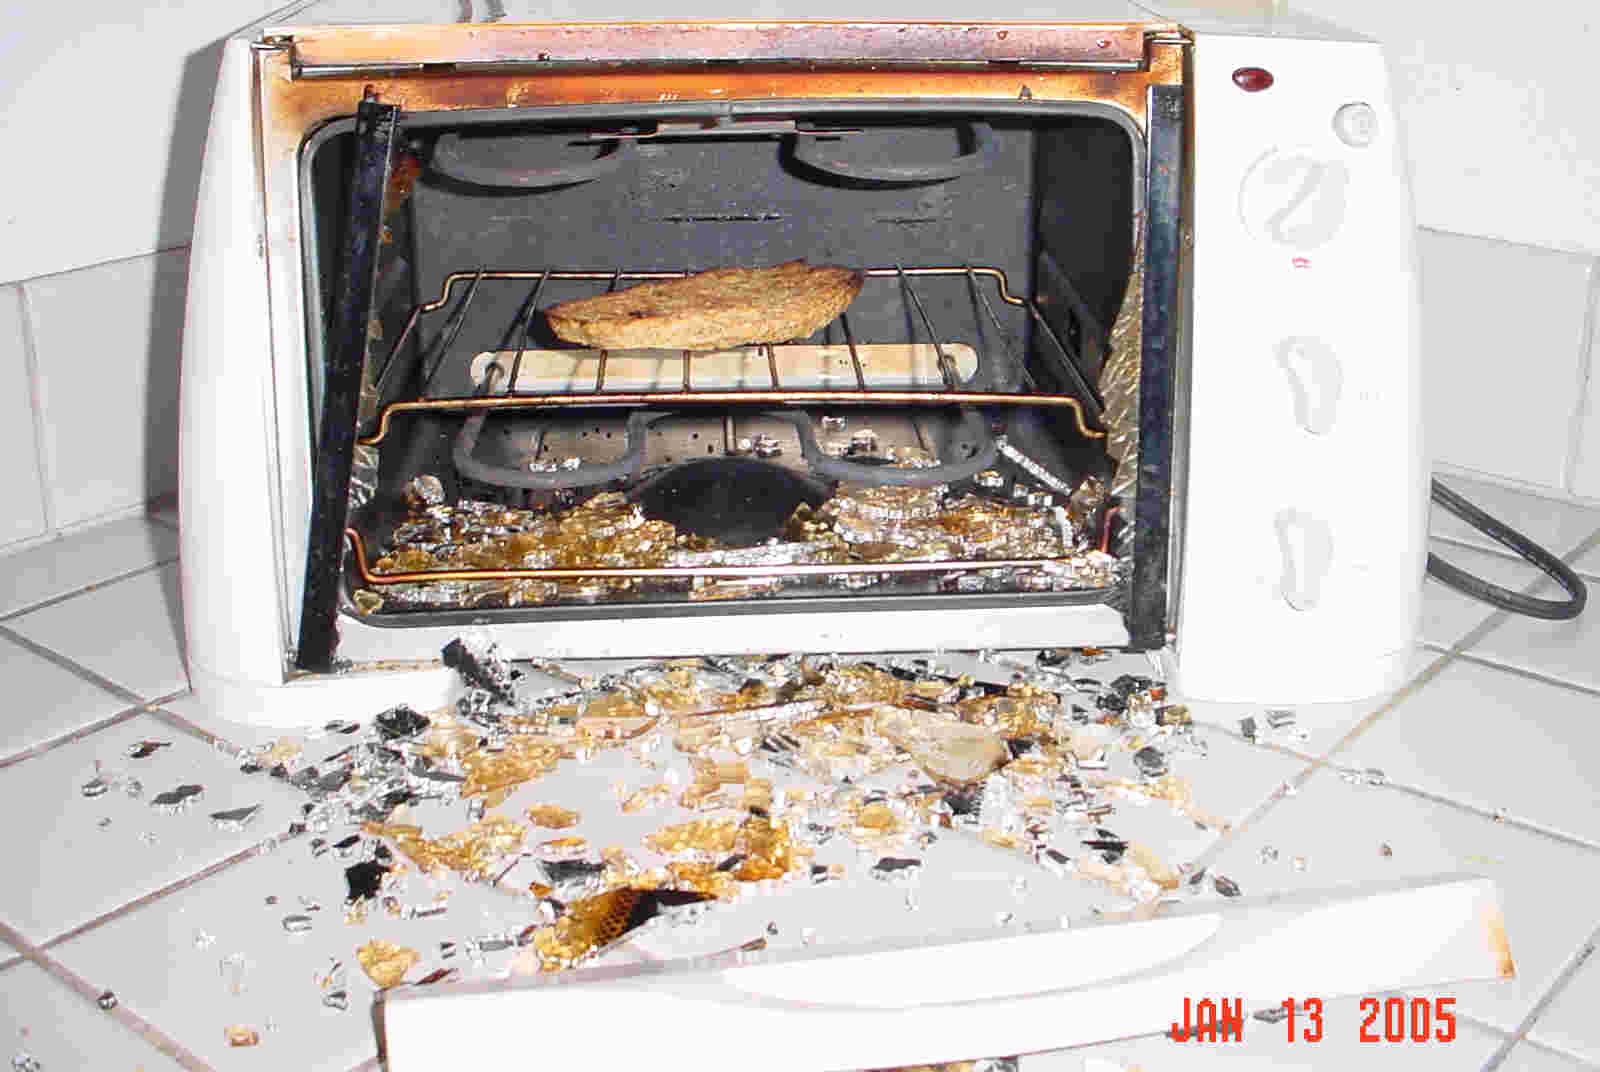 Oven Toaster Toaster Oven Safety